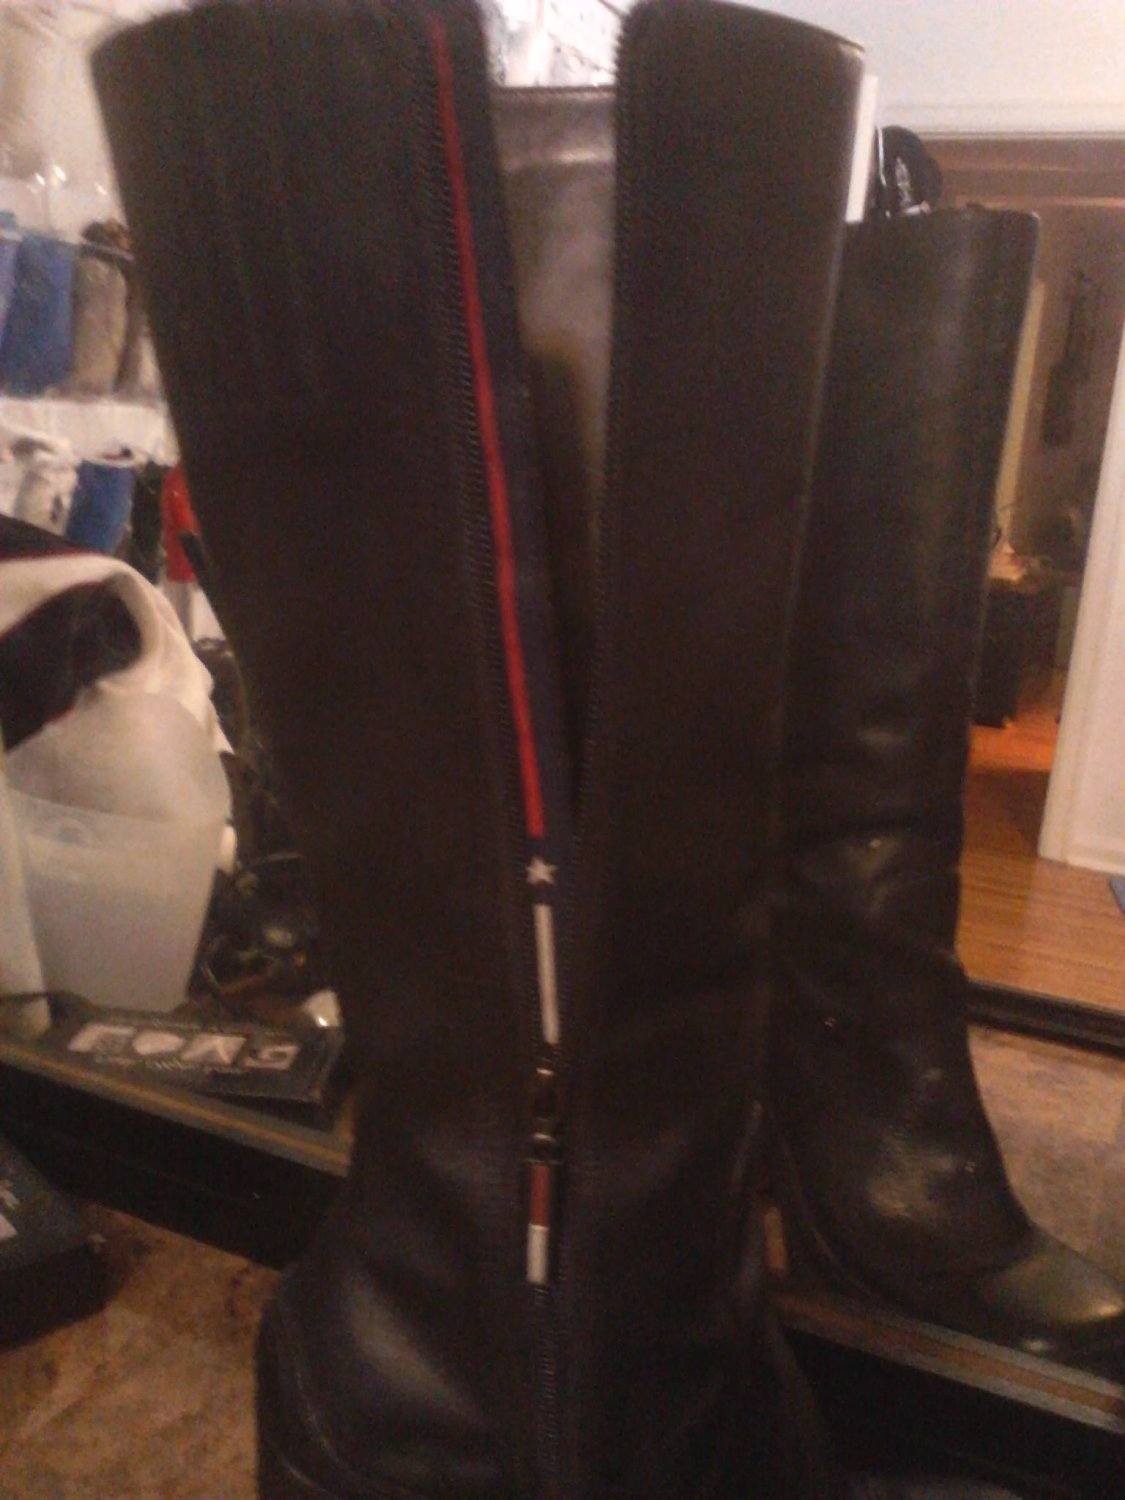 Tommy Hilfiger Black Knee-High Women's Boots Size 7